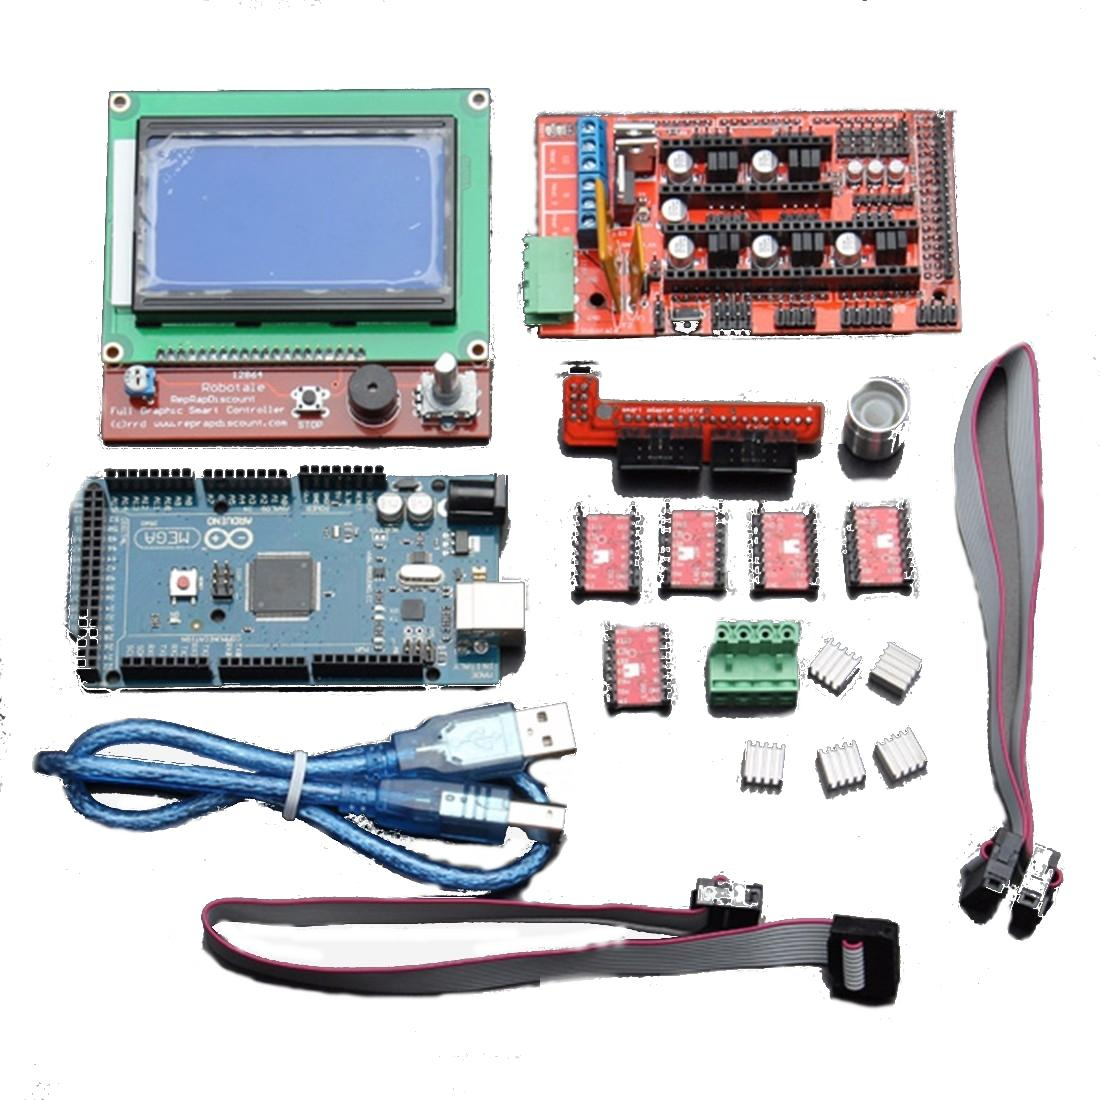 Geekcreit LCD 12864 RAMPS 1.4 Board 2560 R3 Control Board A4988 Driver Kit For 3D Printer фото